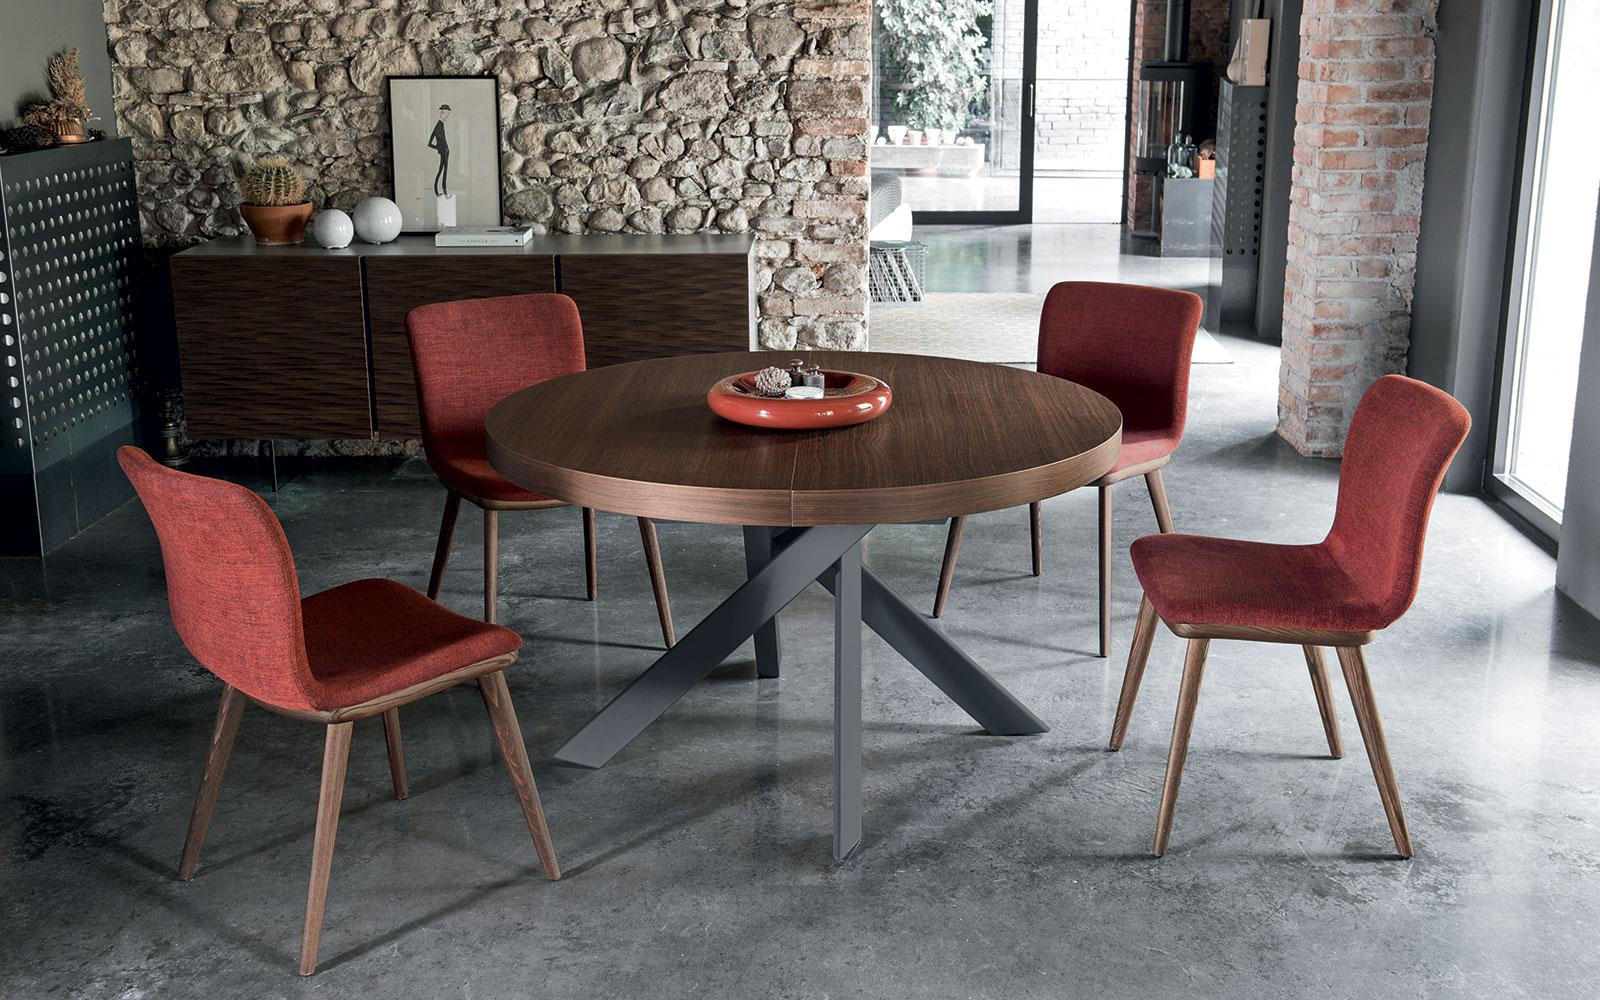 Calligaris furniture verlani for Catalogo calligaris